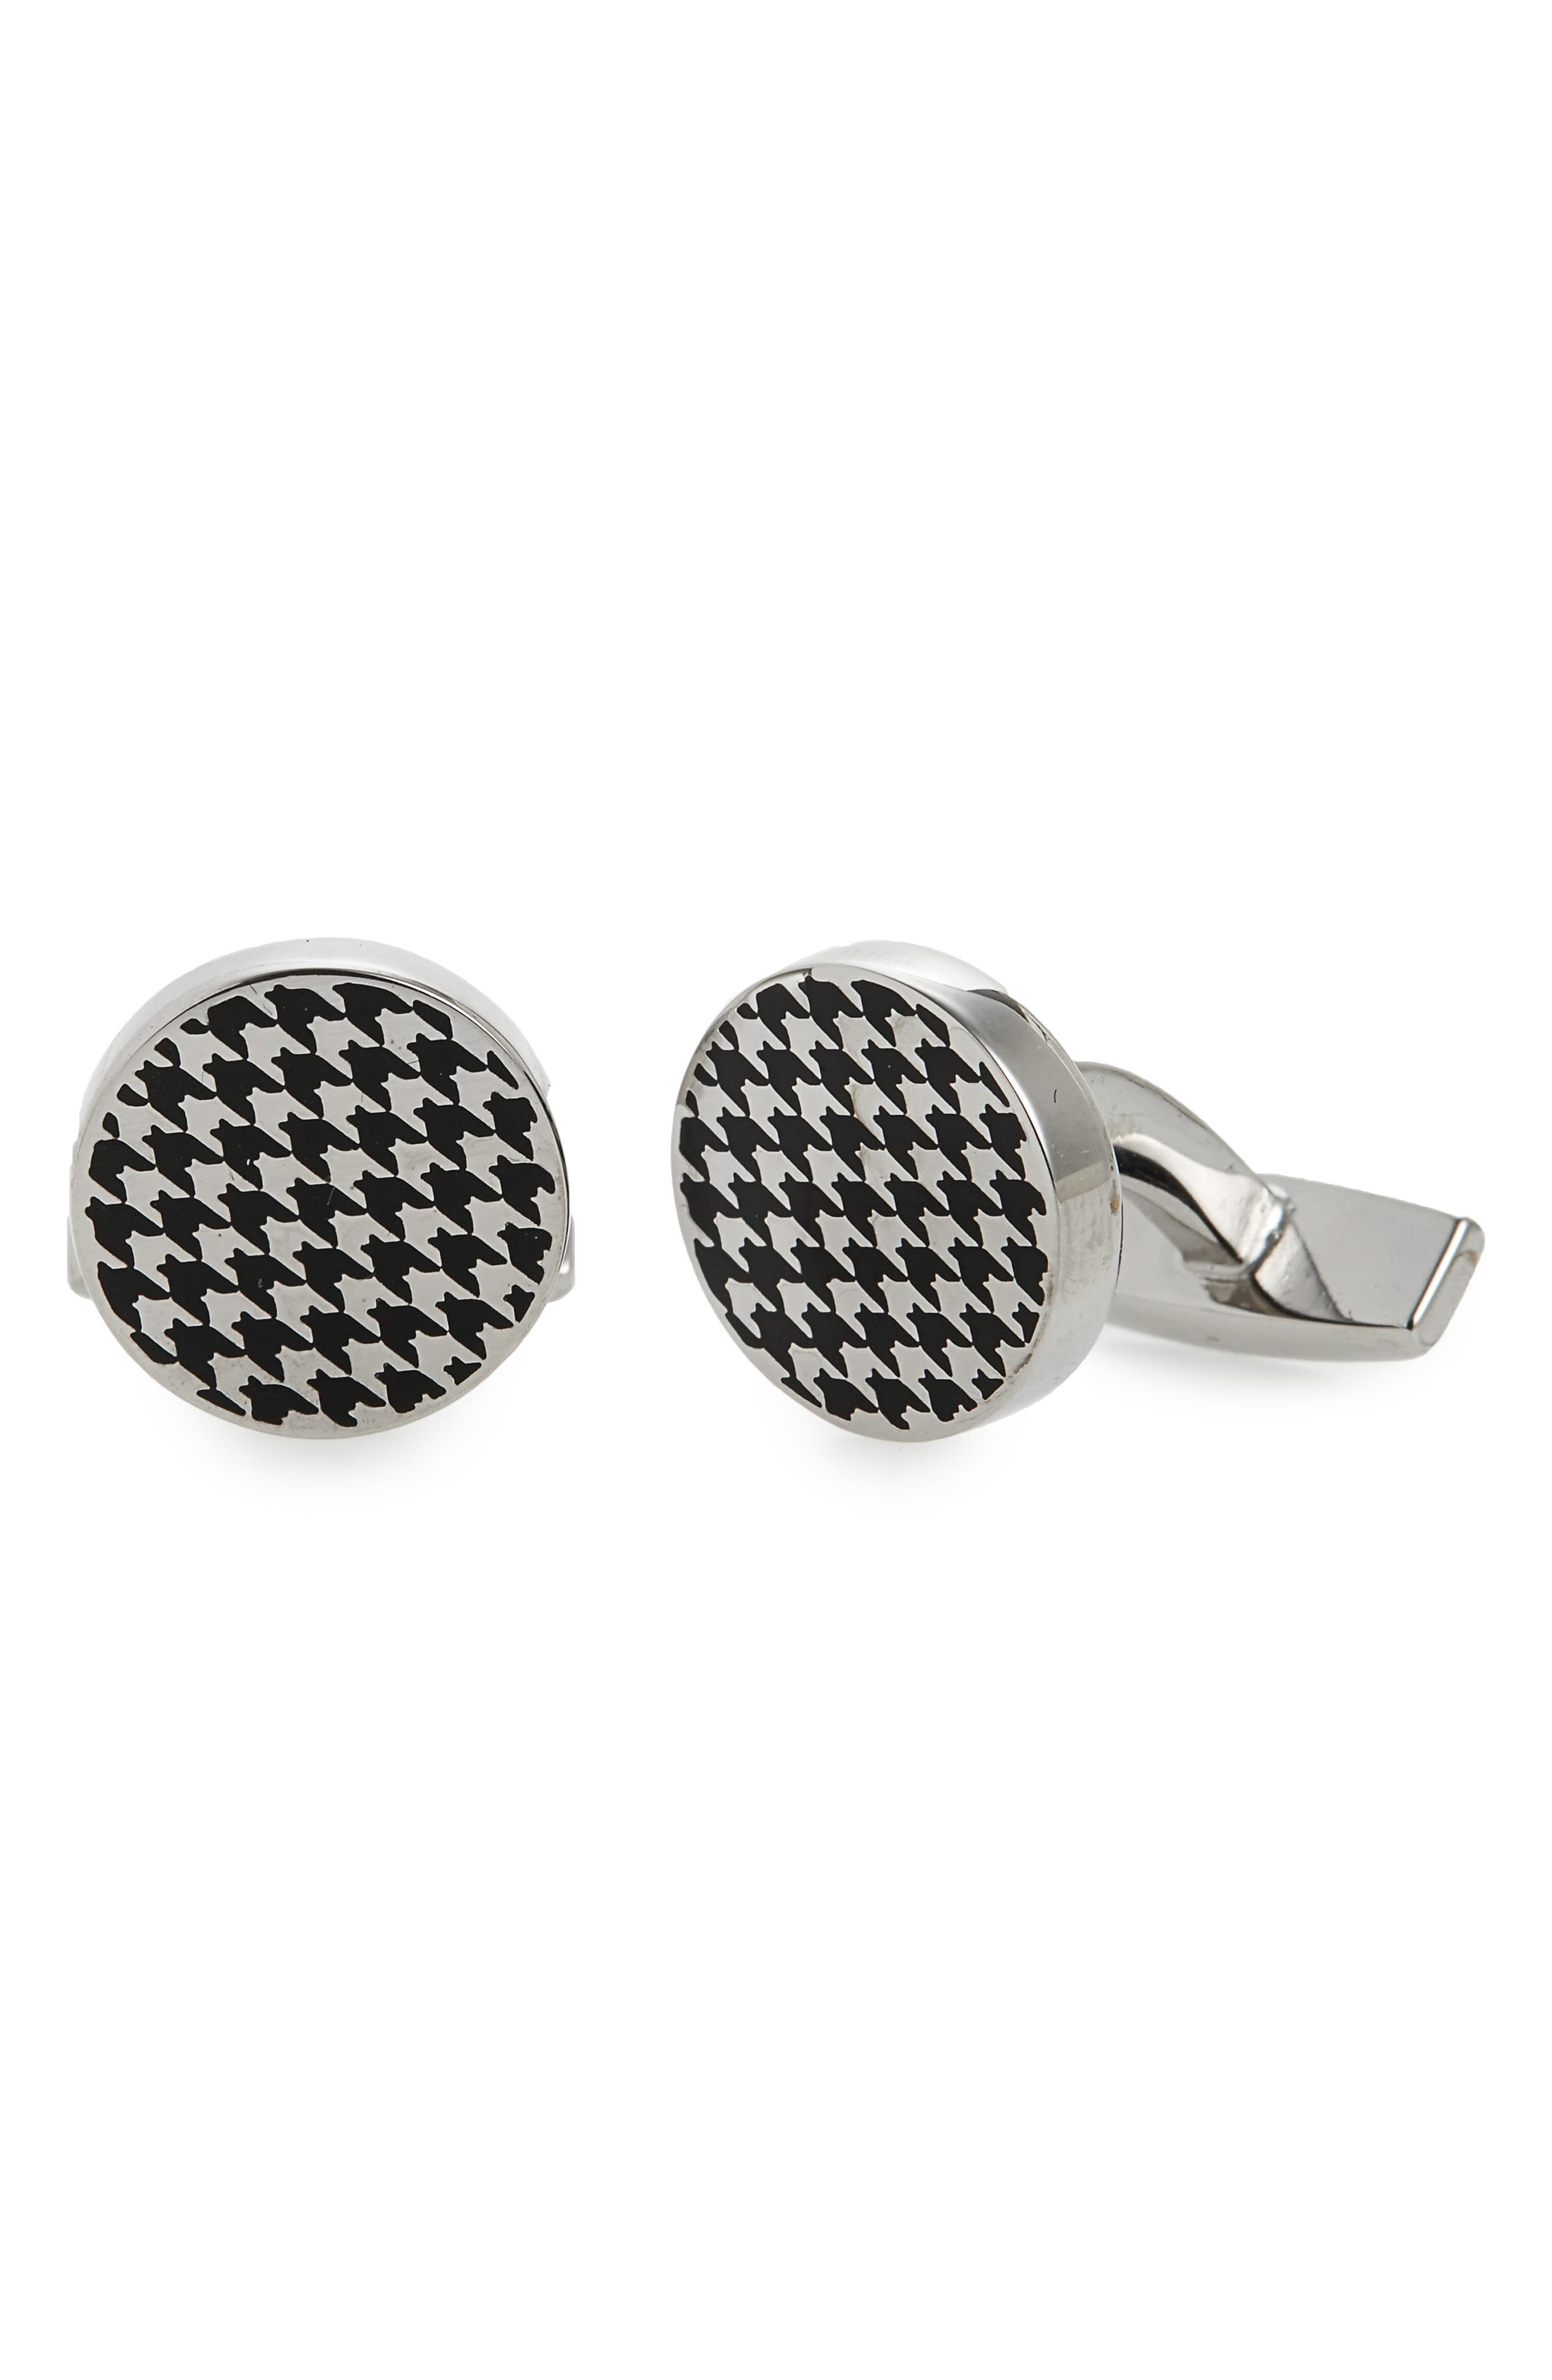 Enamel Houndstooth Cuff Links,                             Main thumbnail 1, color,                             001